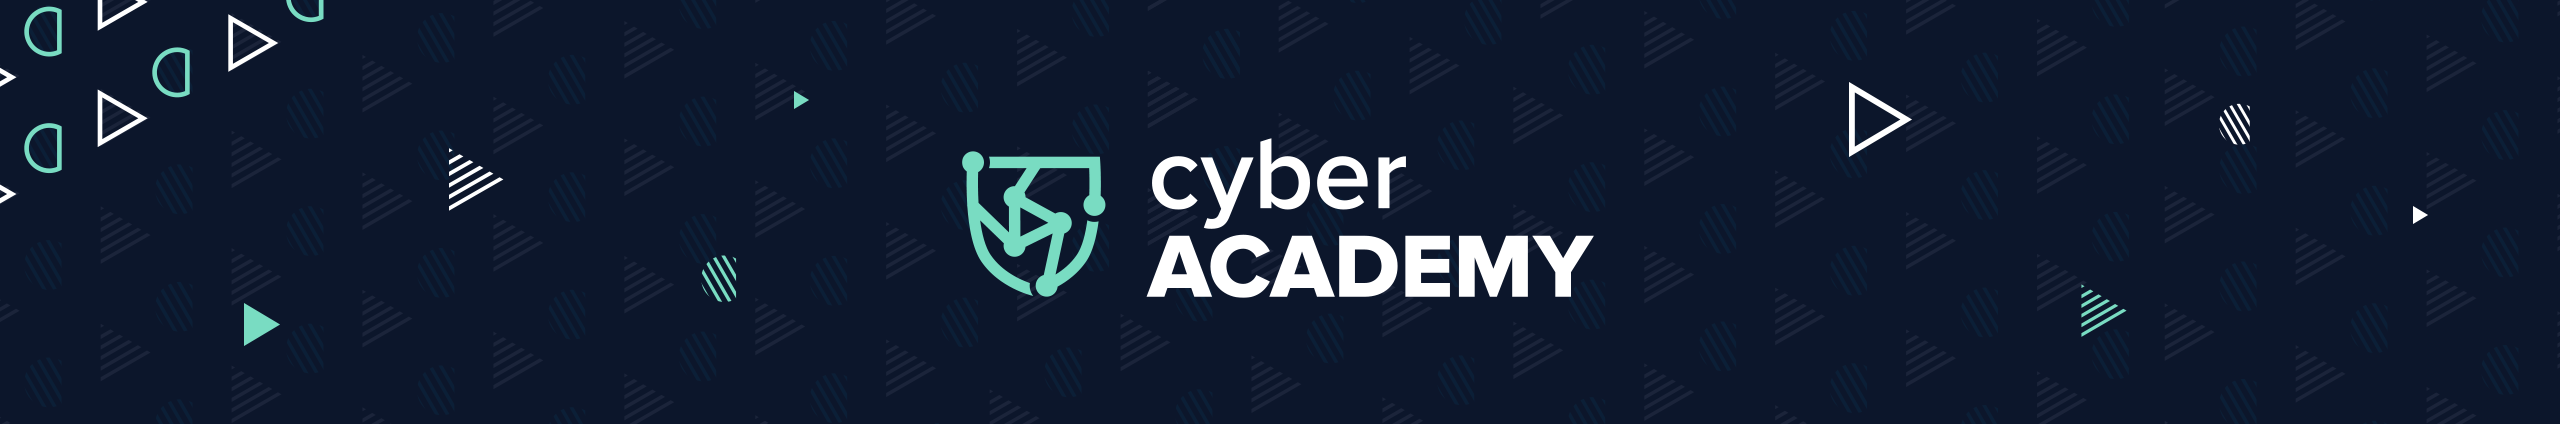 Cyber Academy